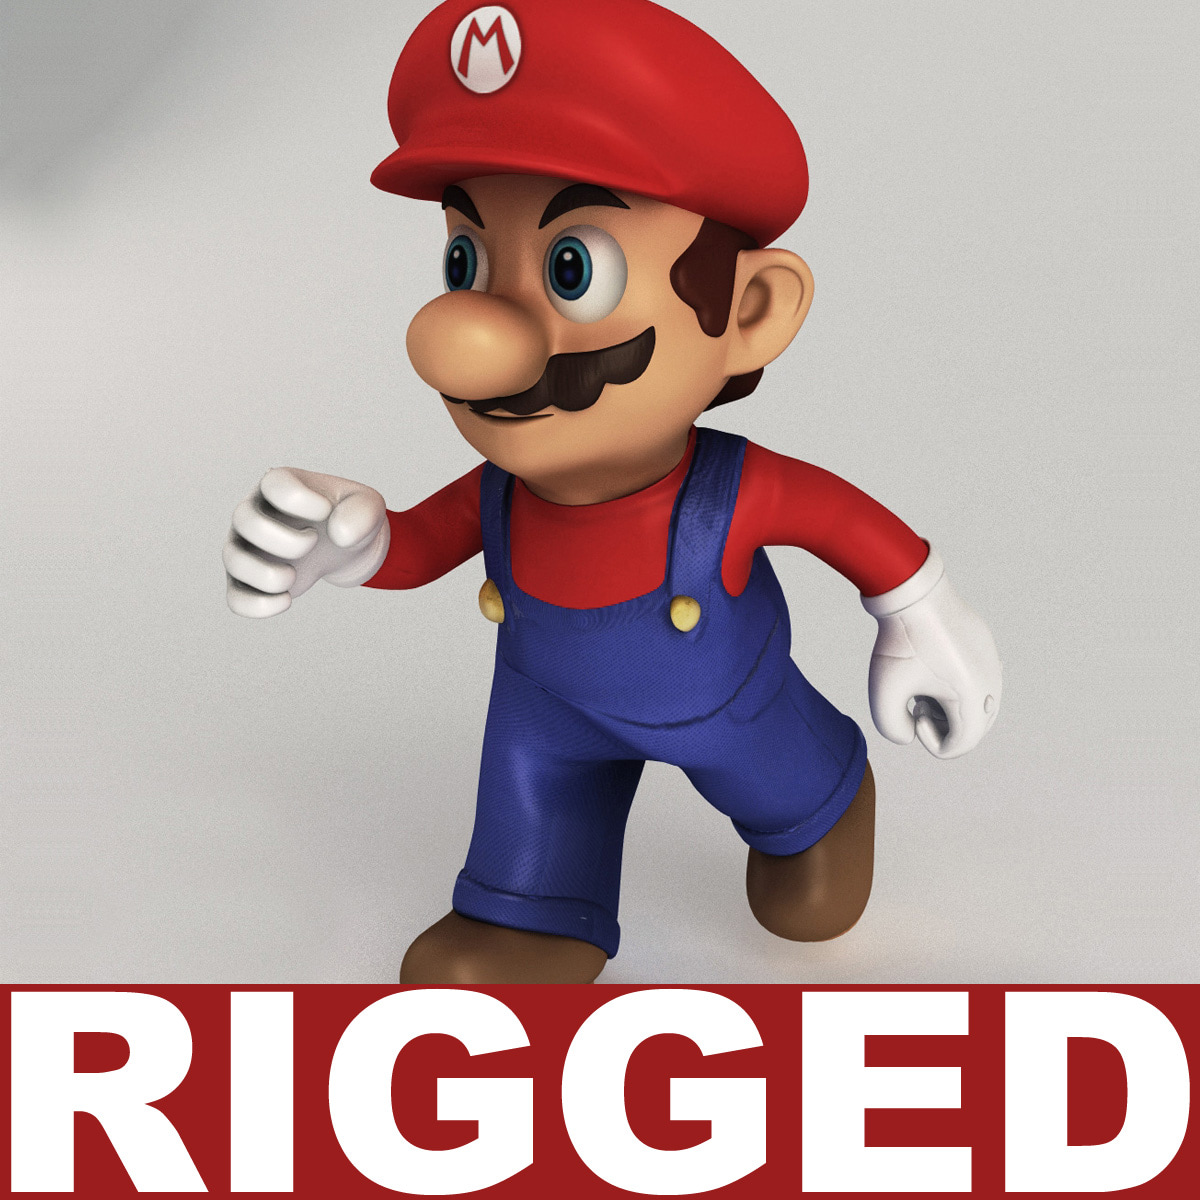 Super_Mario_Rigged_00.jpg